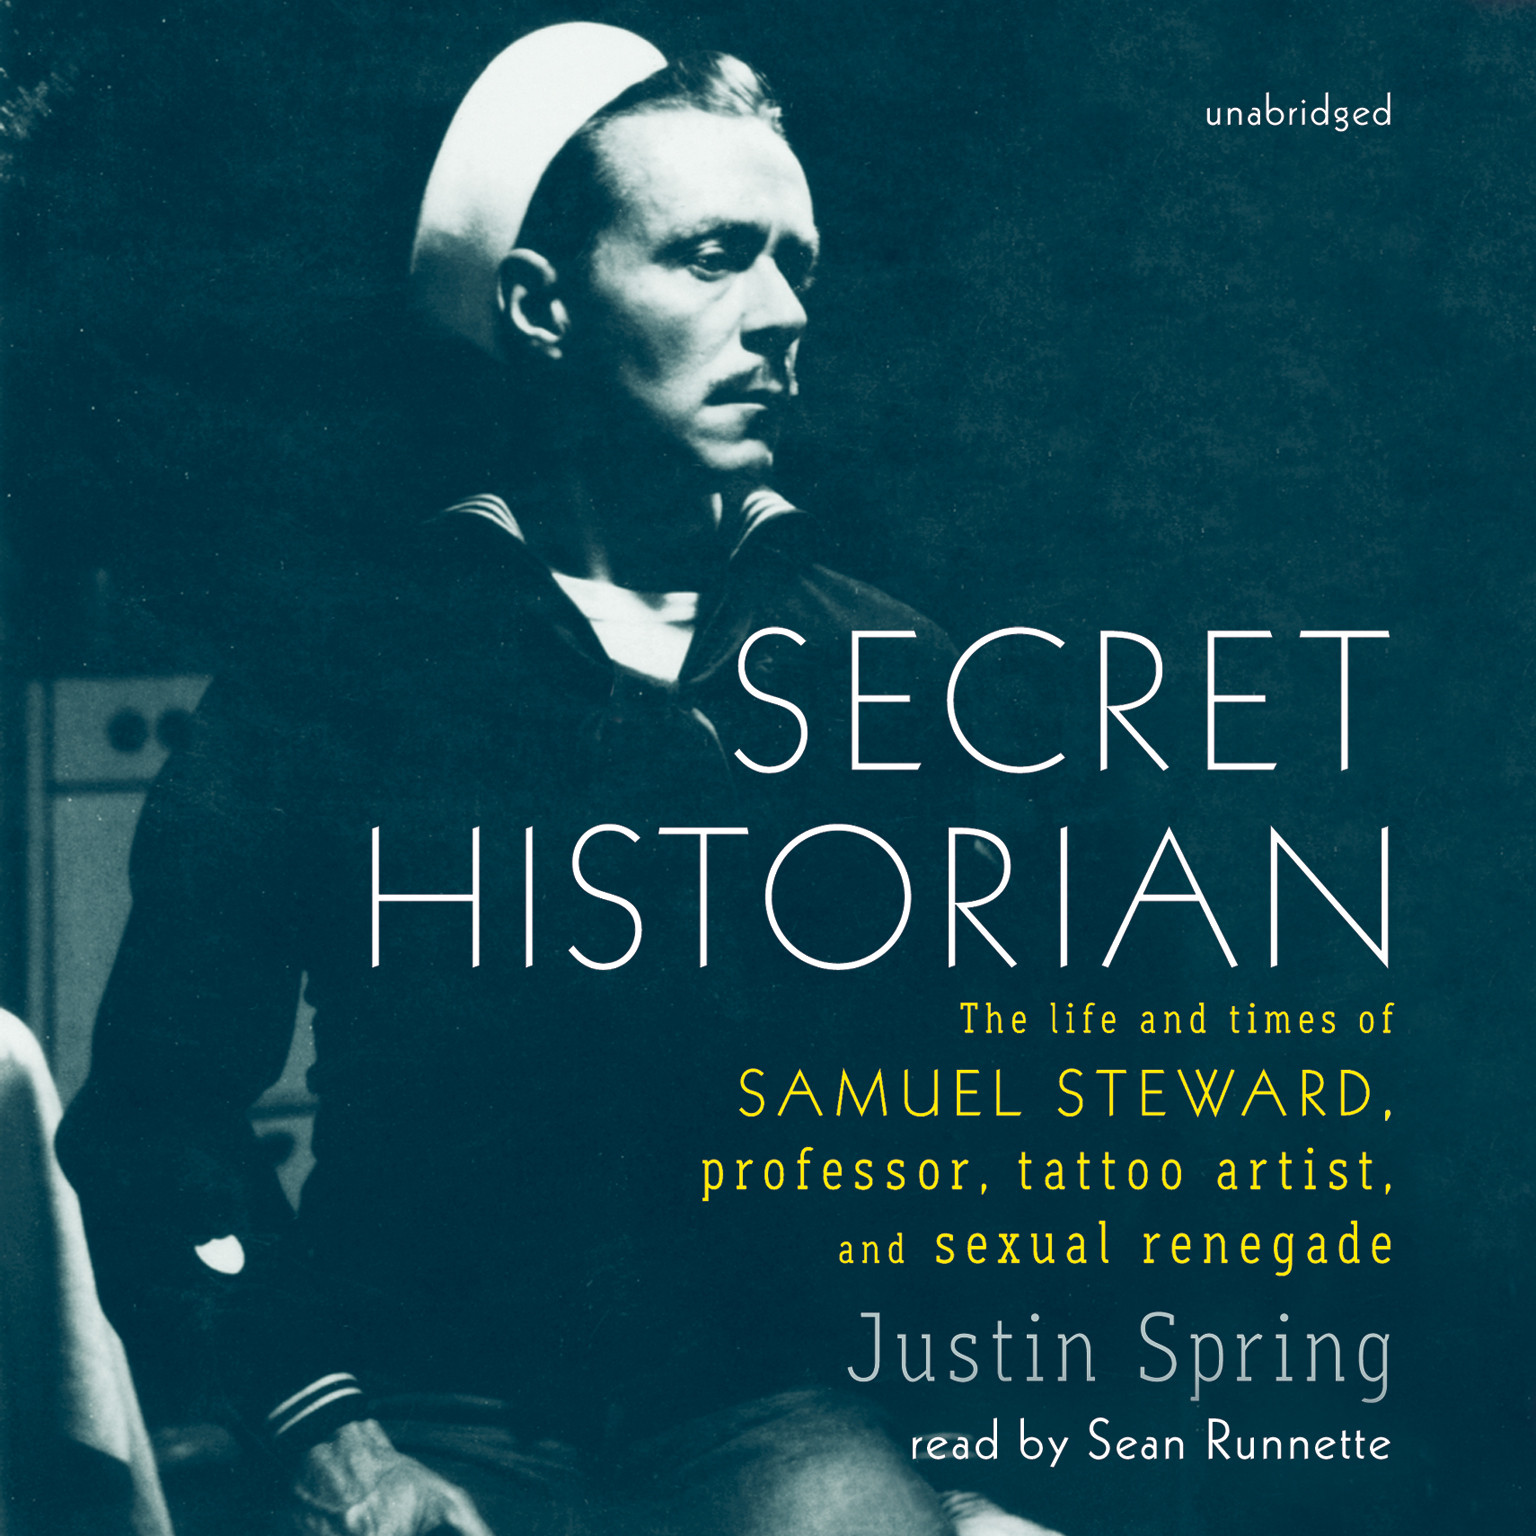 Printable Secret Historian: The Life and Times of Samuel Steward, Professor, Tattoo Artist, and Sexual Renegade Audiobook Cover Art